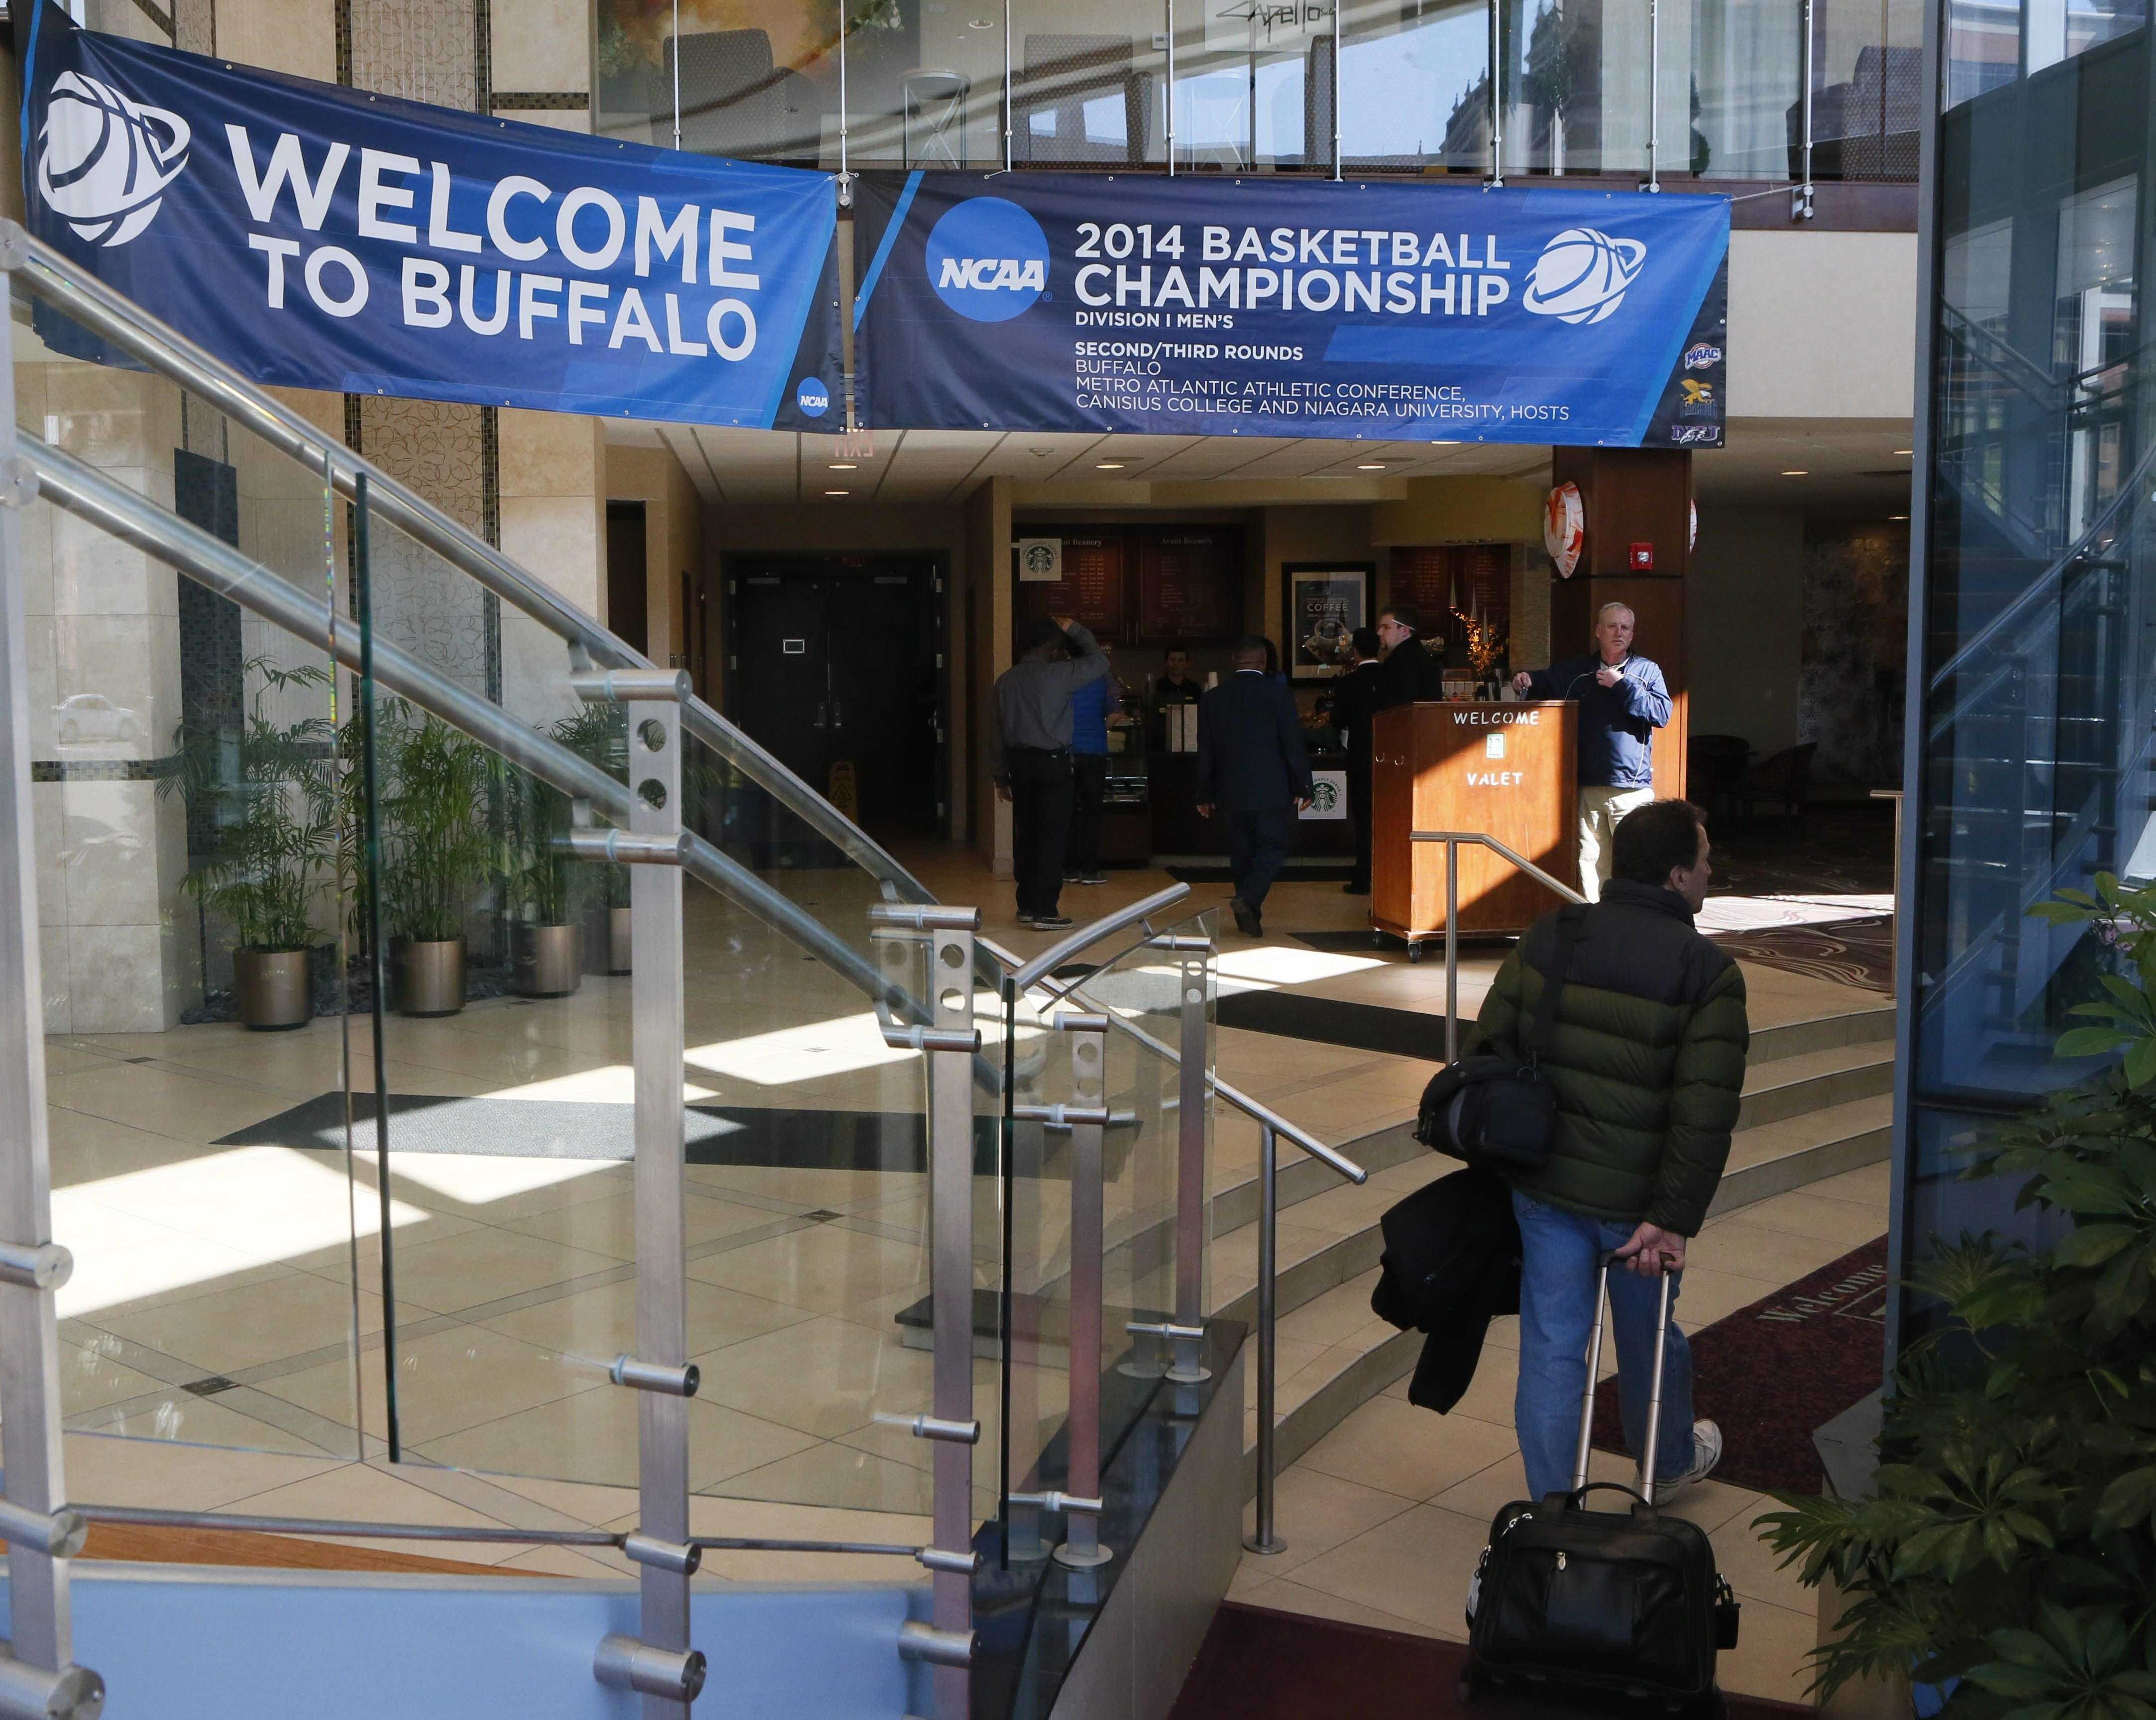 Banners at the Embassy Suites hotel on Delaware Avenue welcome basketball visitors. Sightseers who head north on Delaware will get a look at Millionaires' Row, a vestige of Buffalo's gilded age.